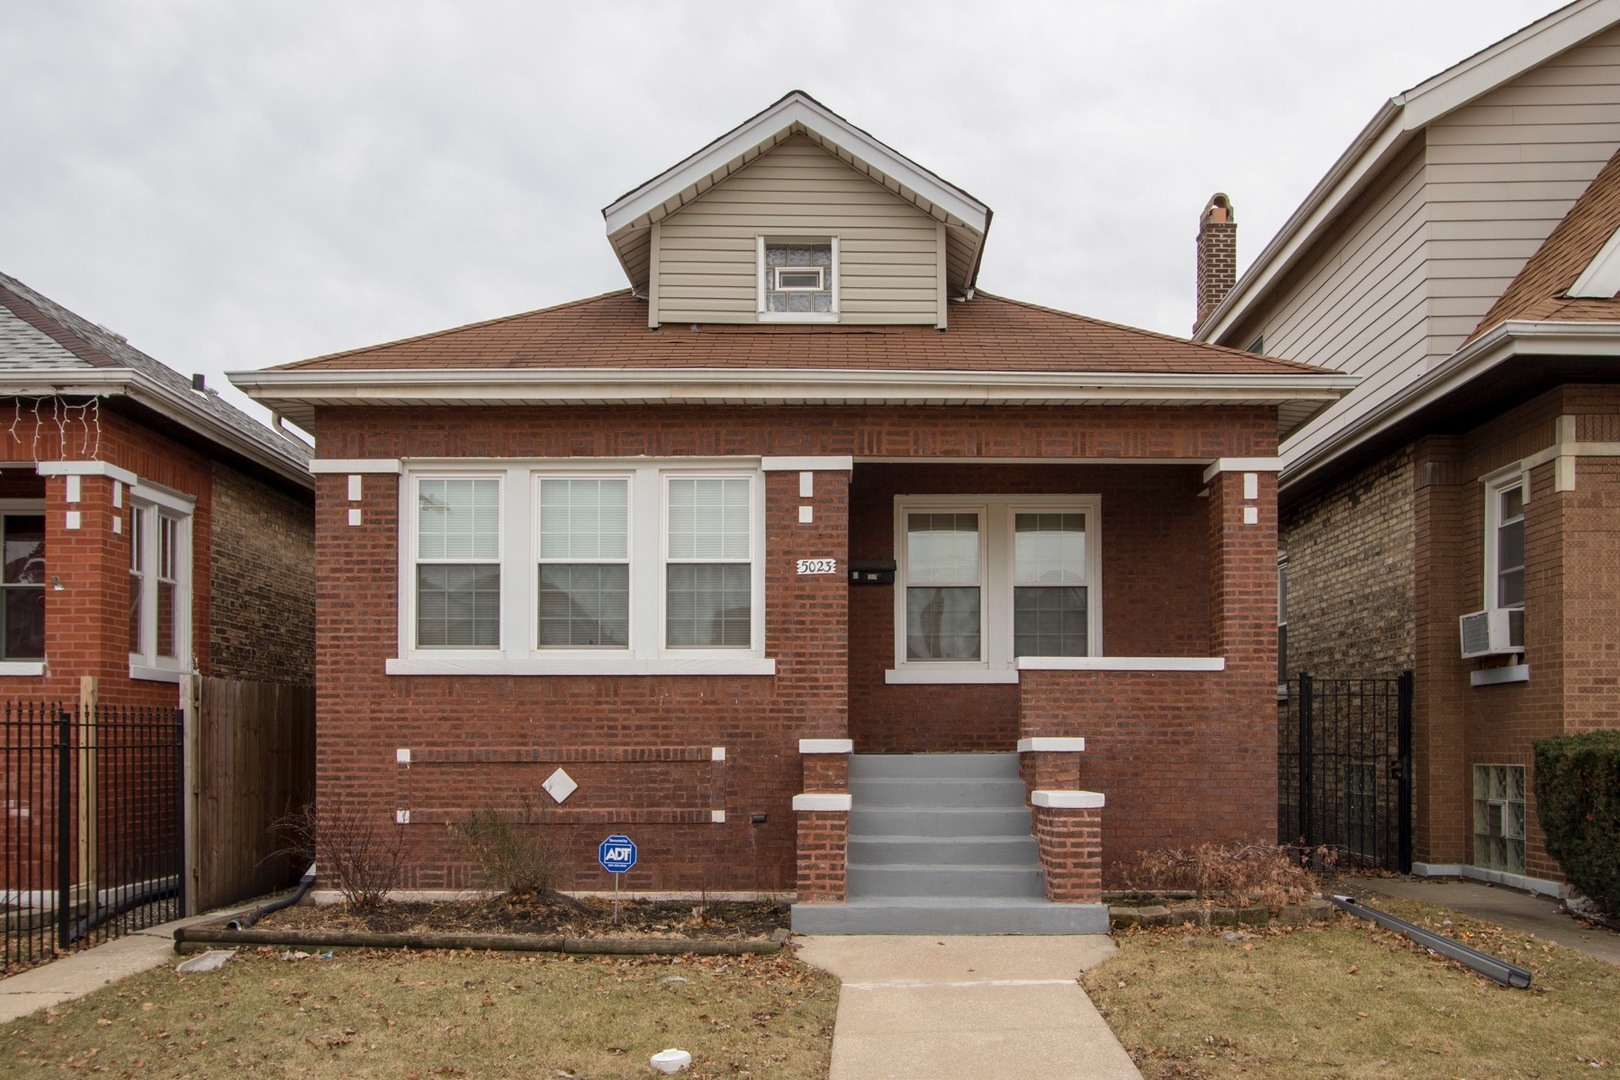 5023 WEST DRUMMOND PLACE, CHICAGO, IL 60639